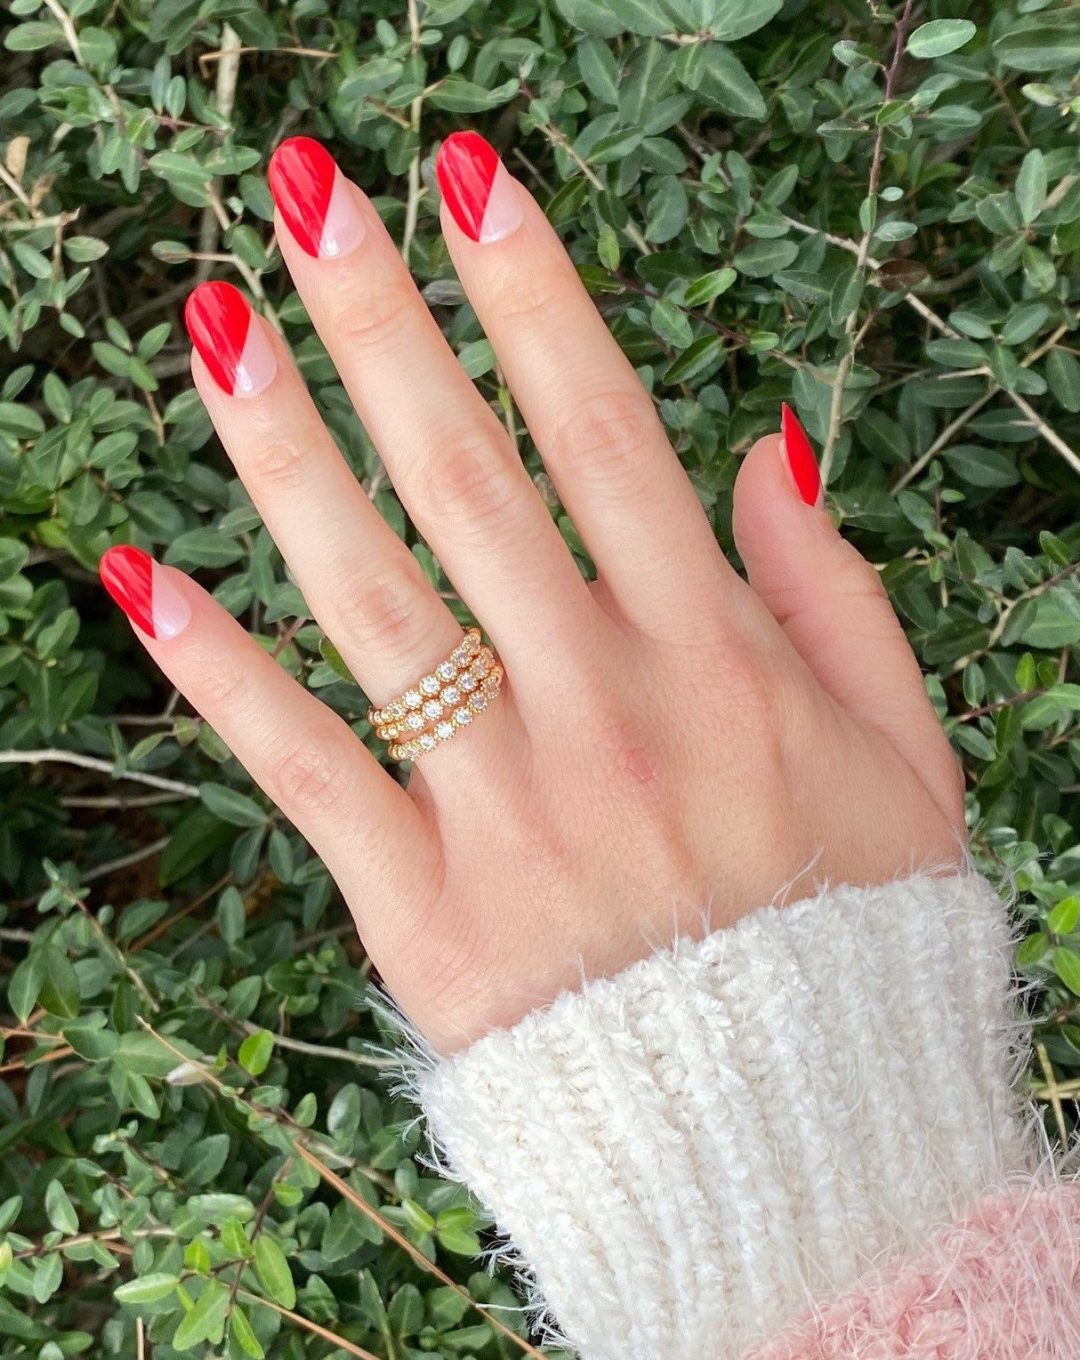 Red negative space French tip nails